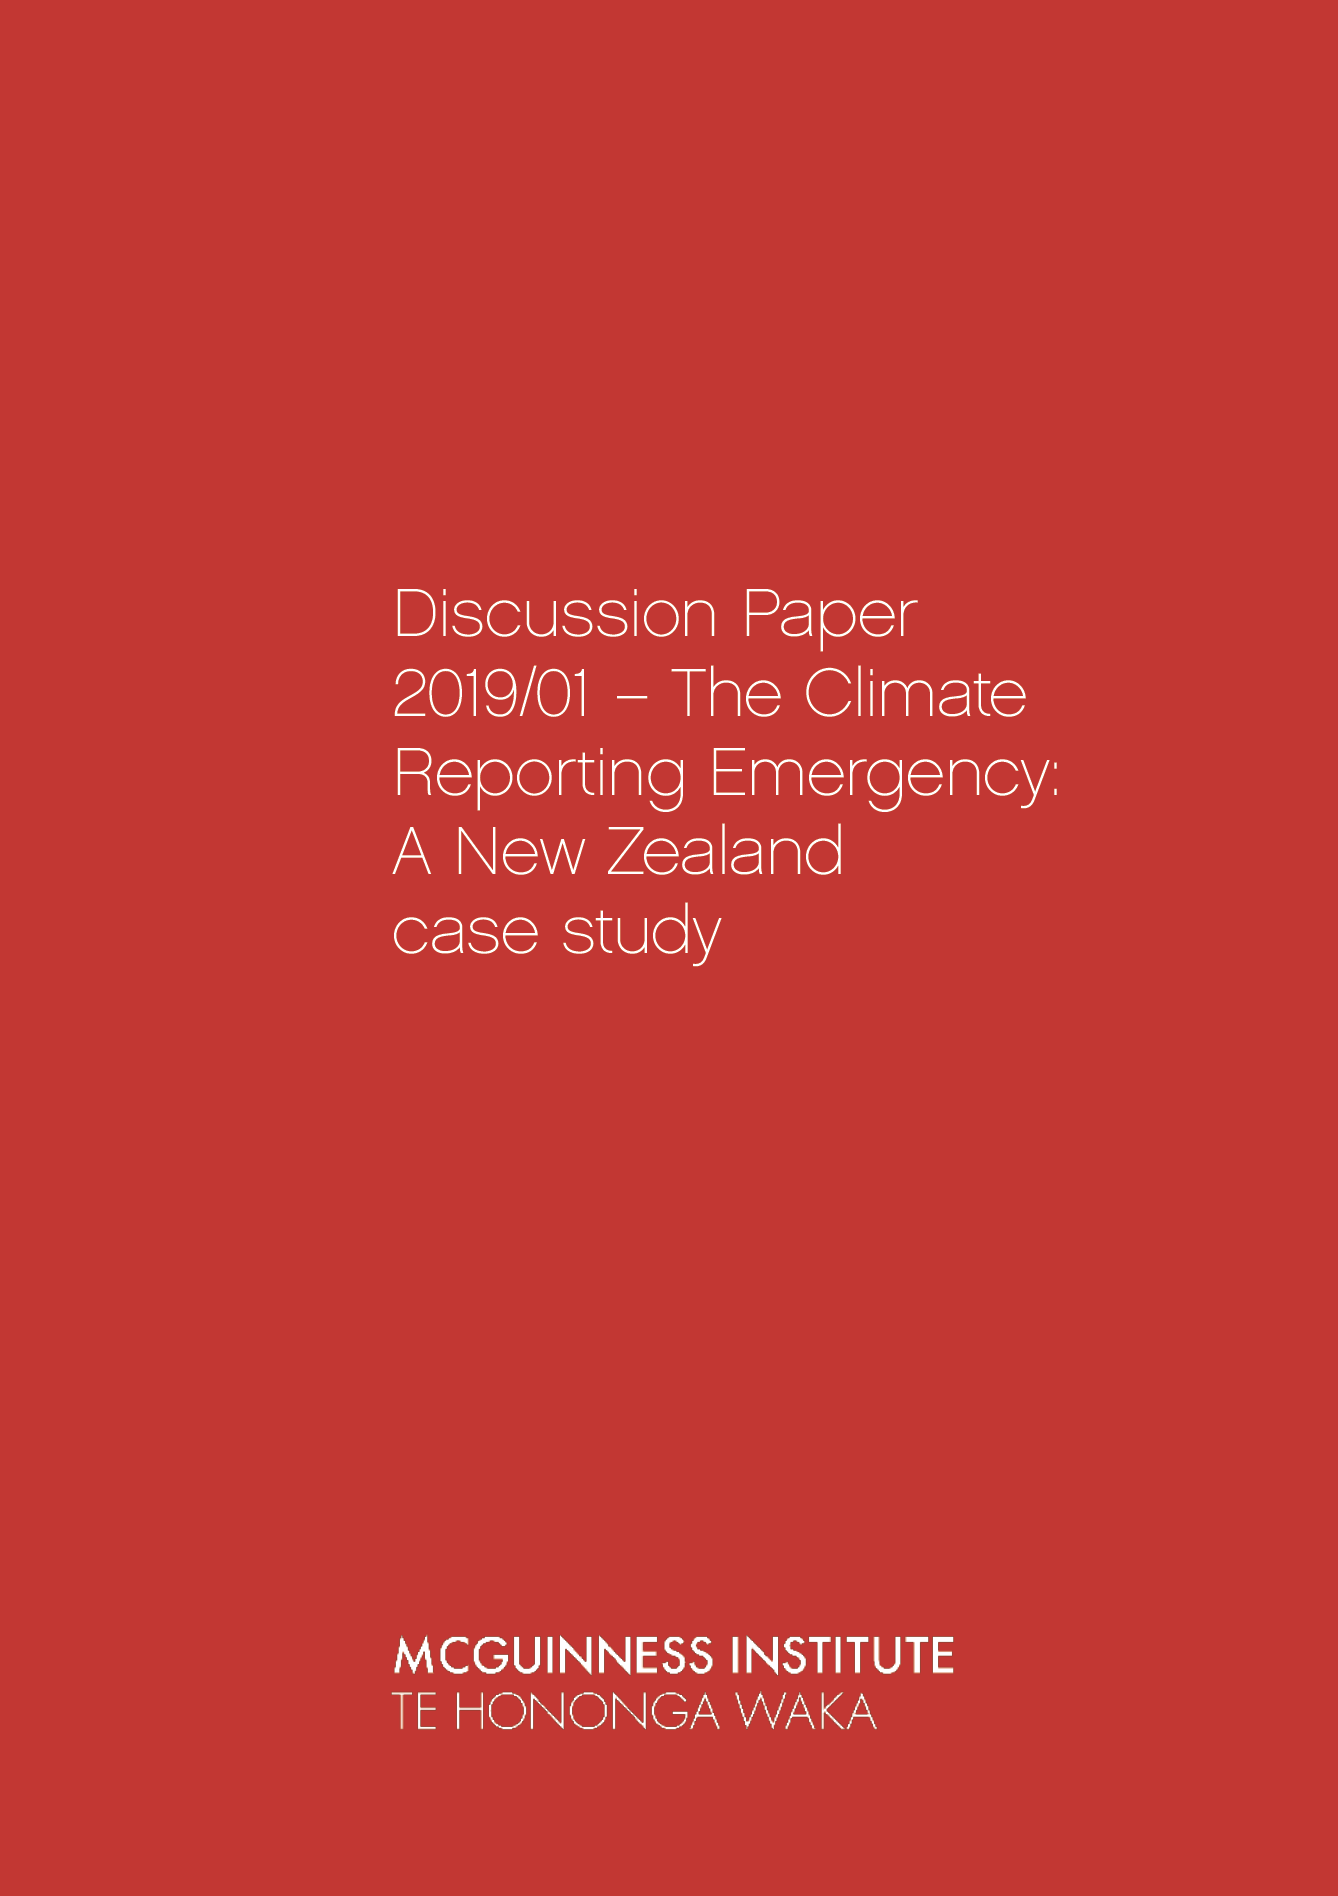 Cover of Discussion Paper 2019/01